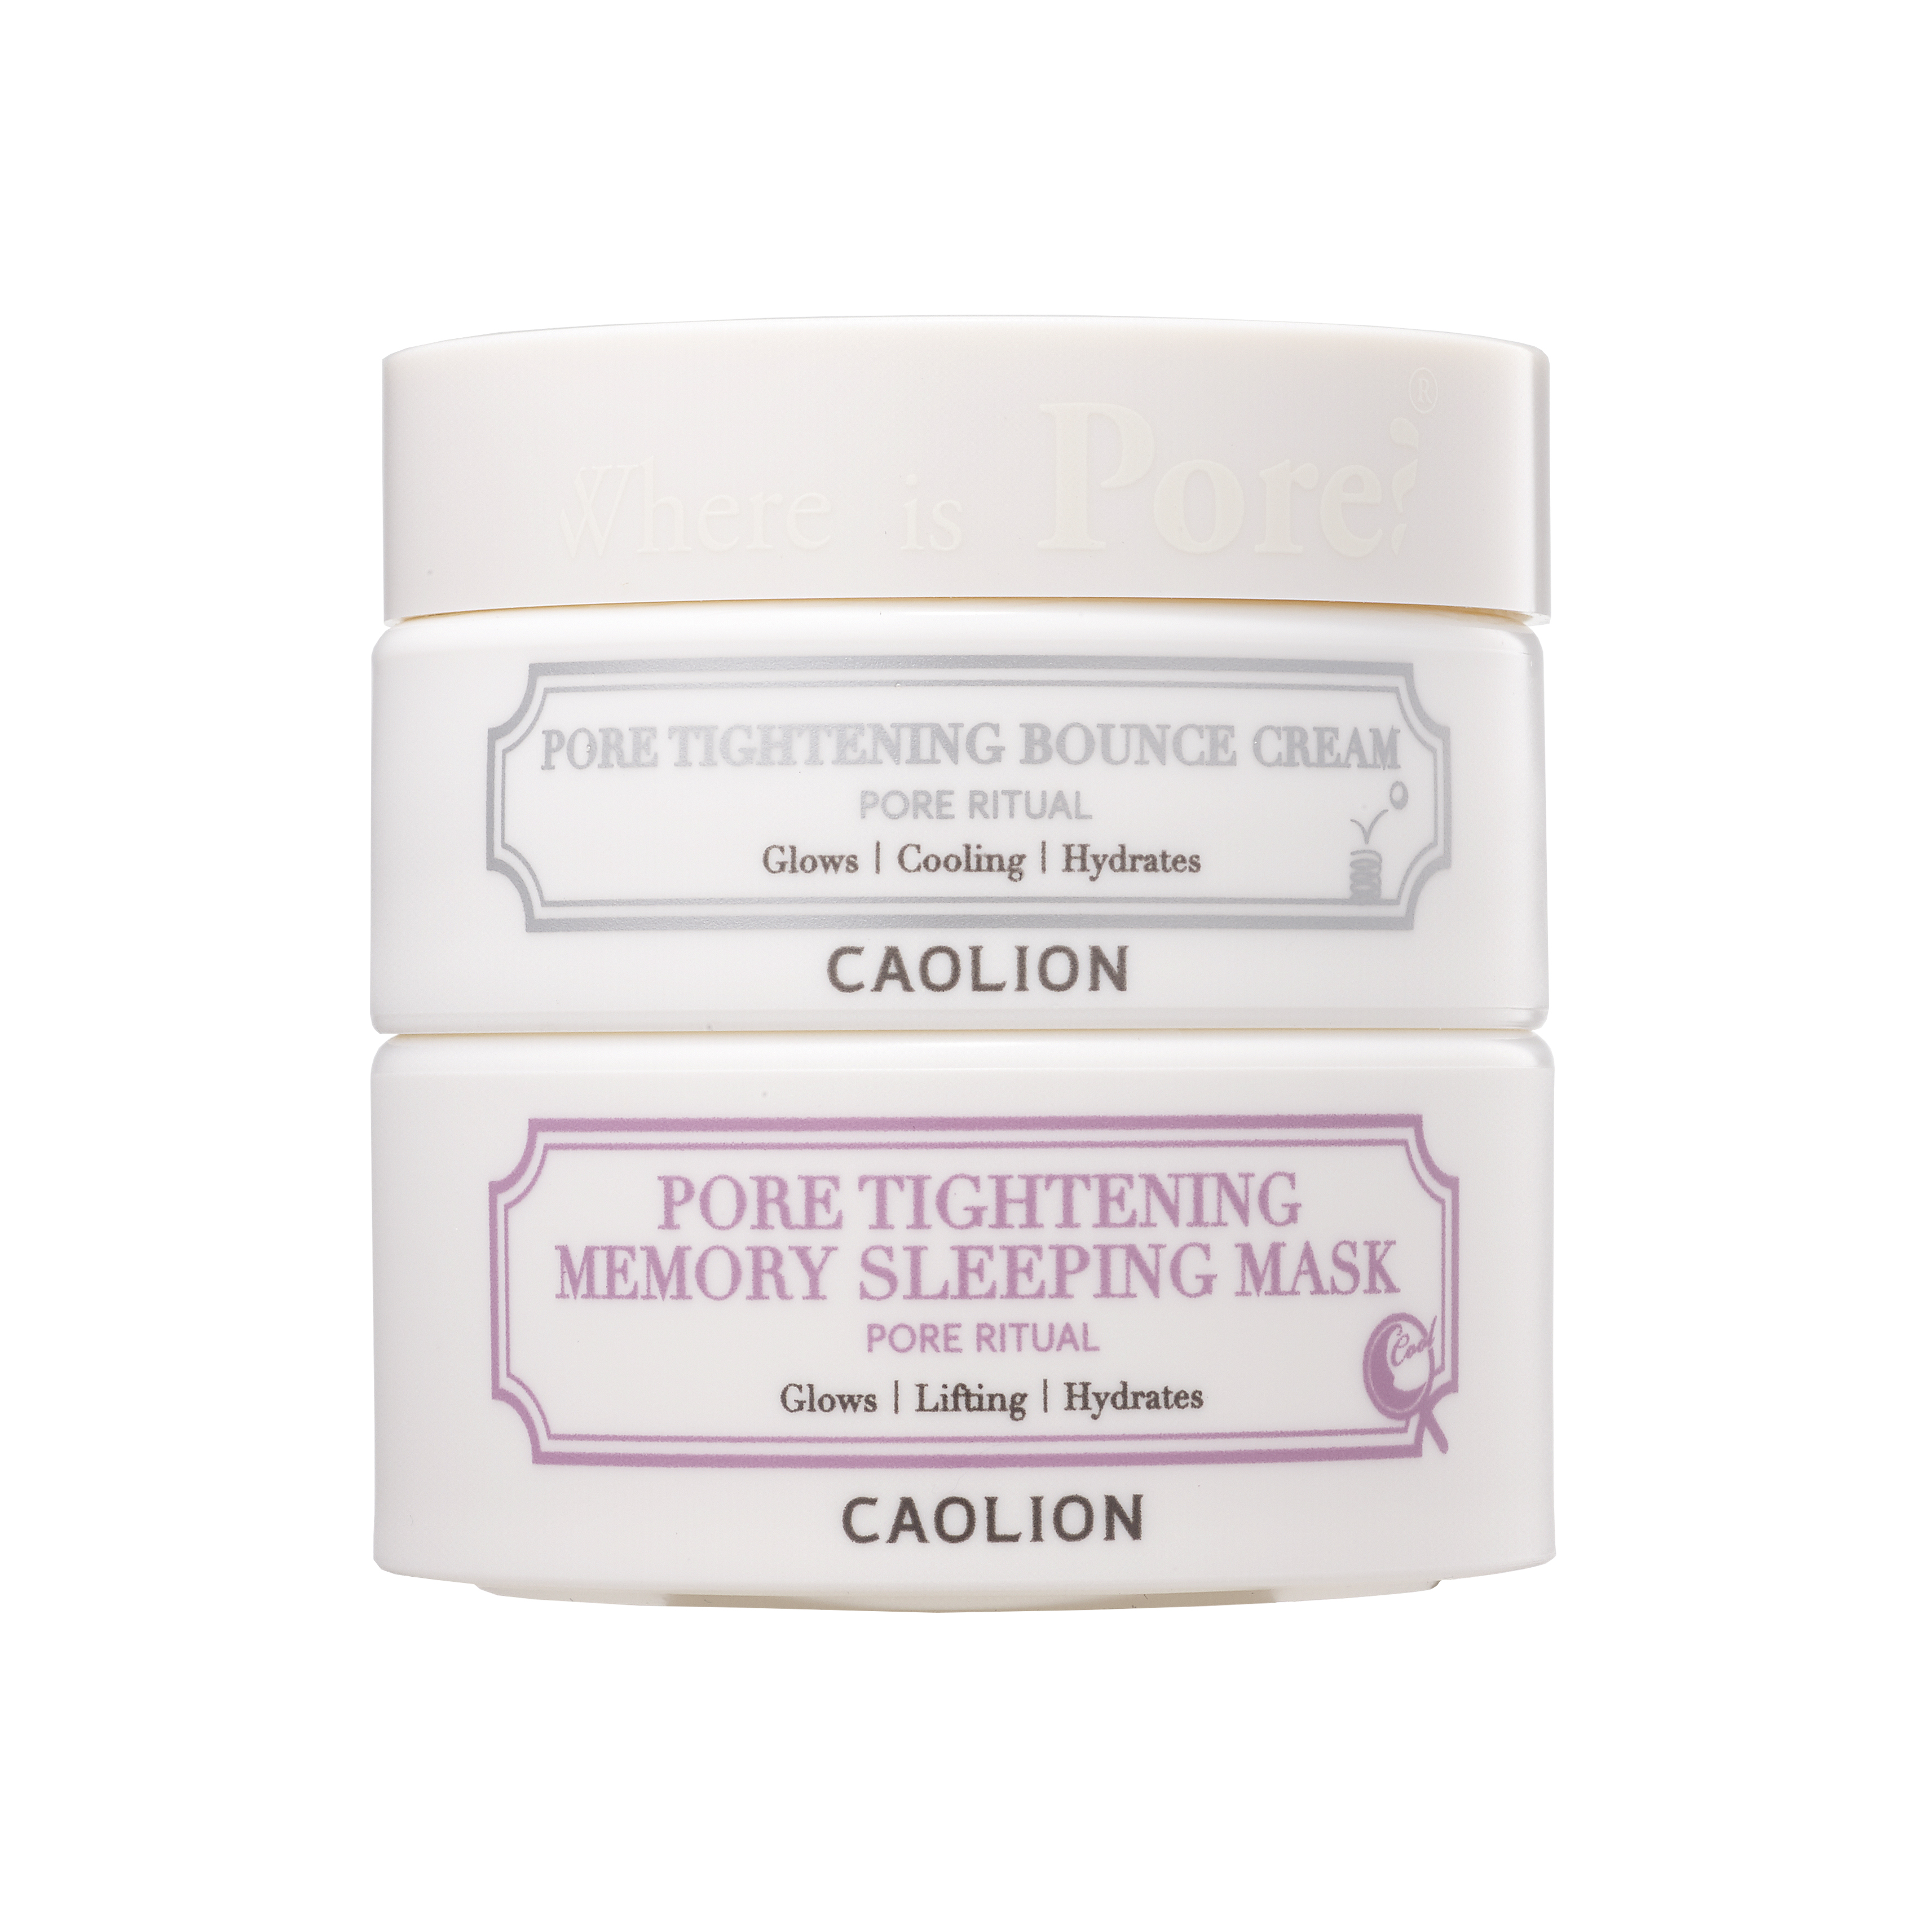 Caolion Pore Tightening Day & Night Glow Duo (Memory Sleeping Mask)